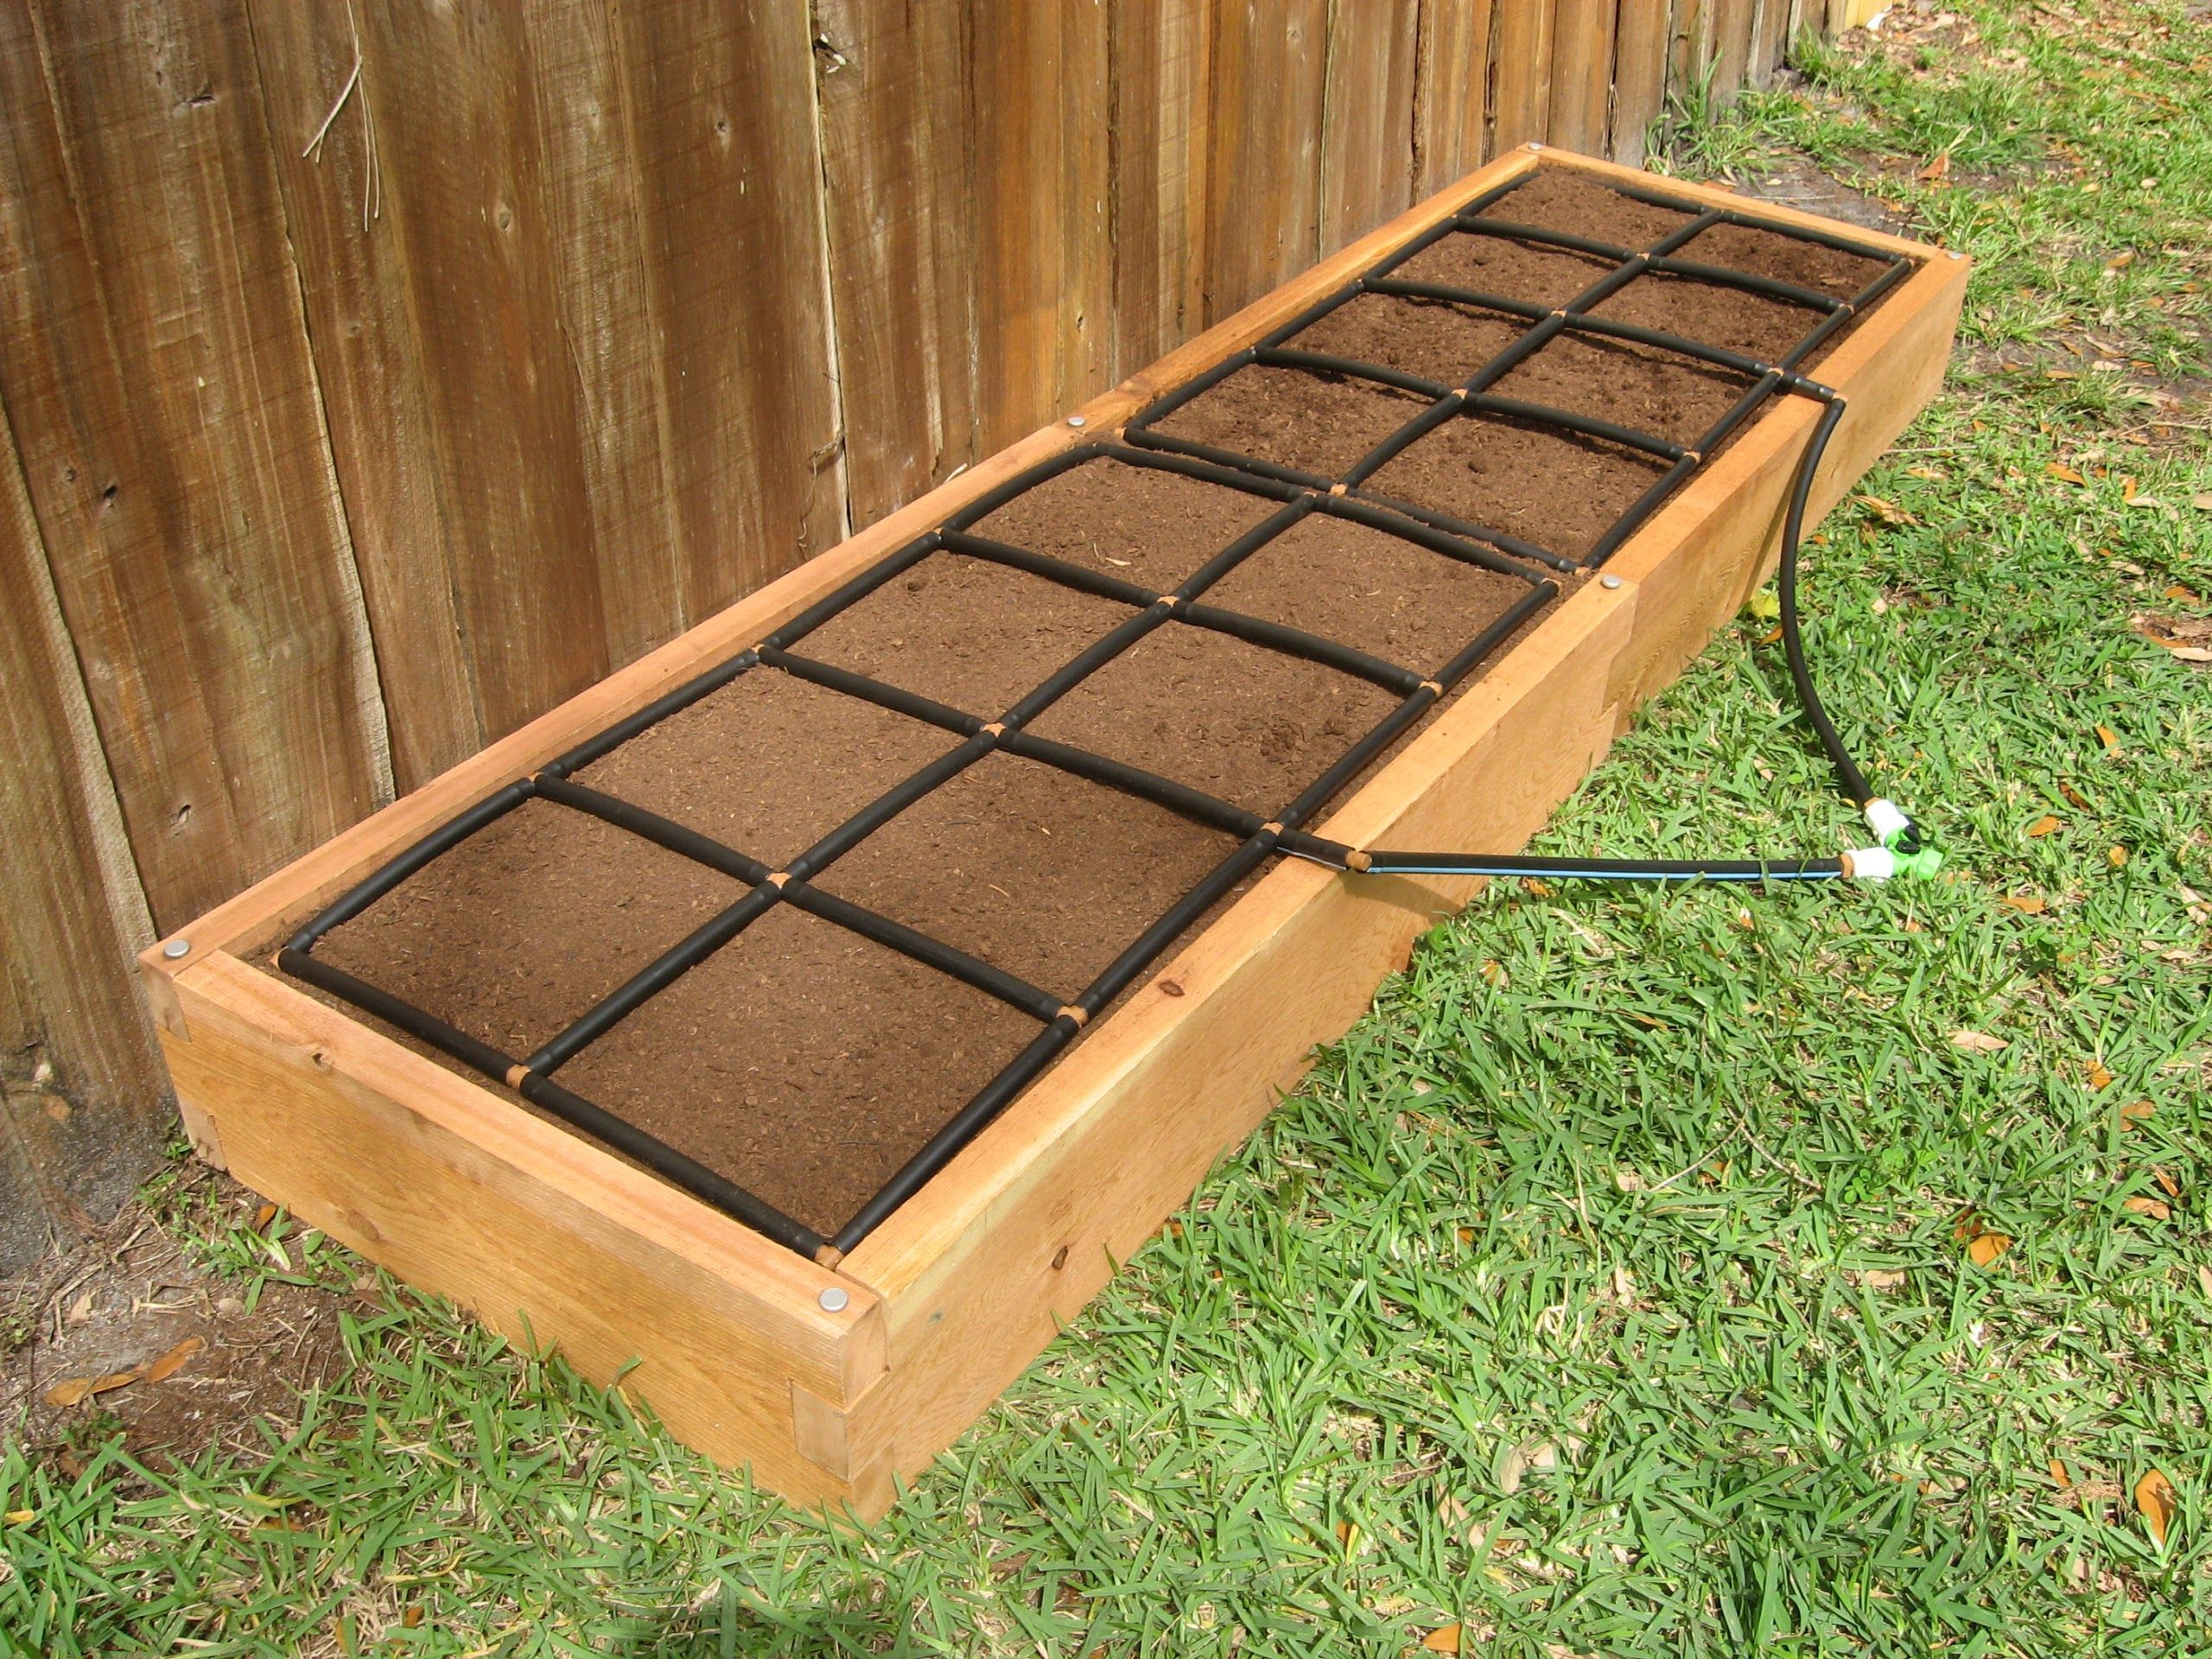 2x8 Raised Garden Kit w/ The Garden Grid™ Raised